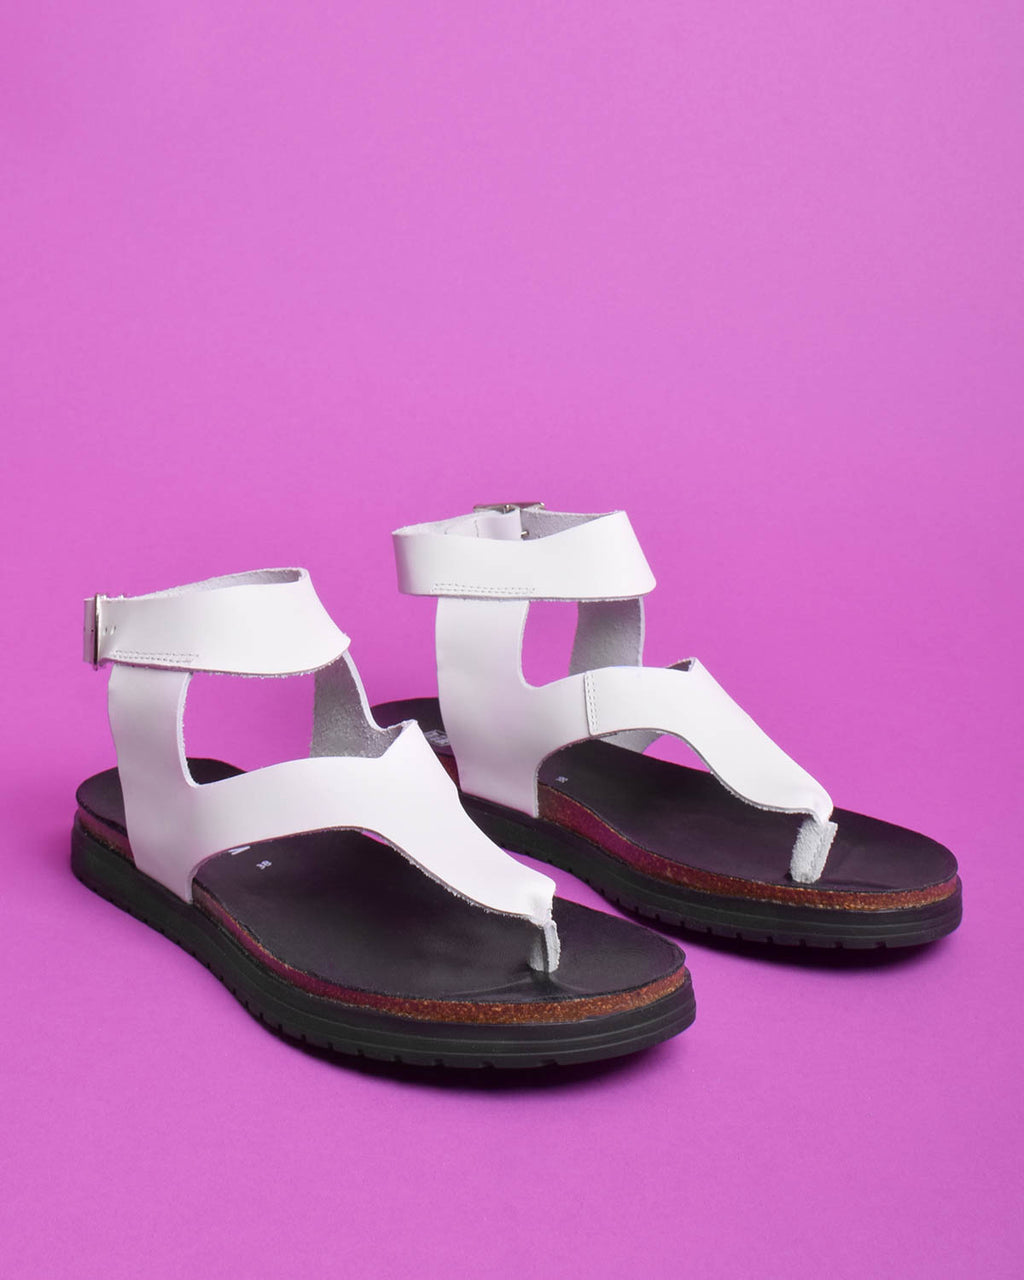 Tesa Vachetta Leather Thong Gladiator Sandals - White - Verbenas USA